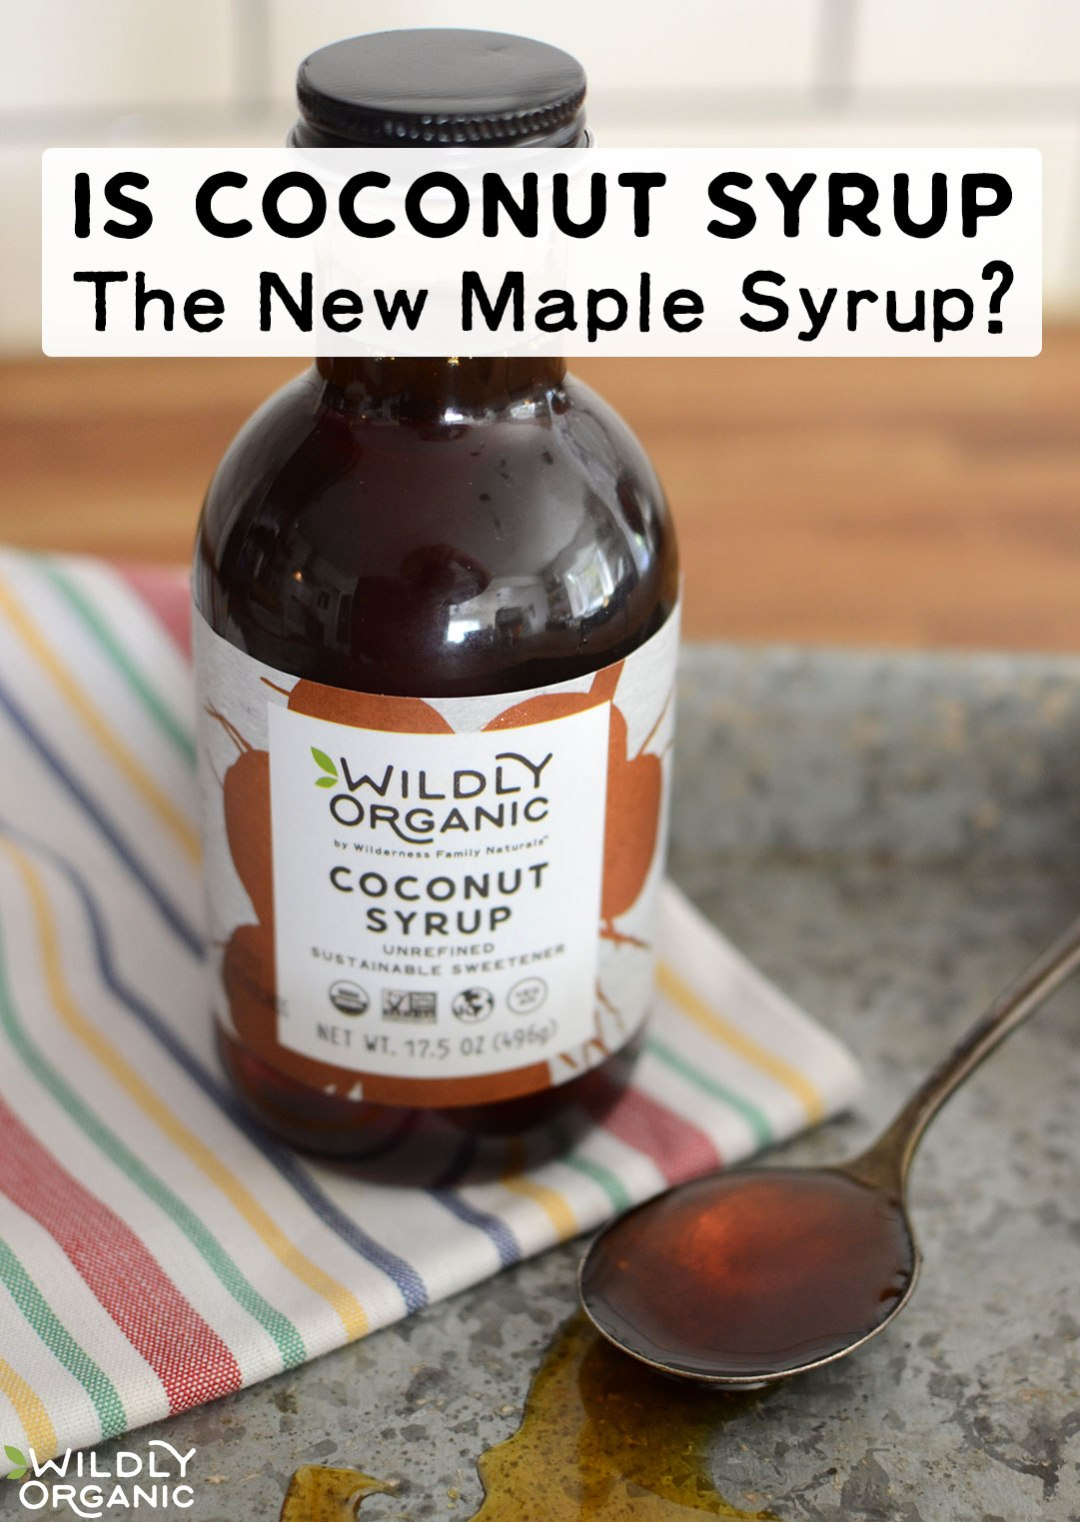 cbab297b70c Is Coconut Syrup The New Maple Syrup